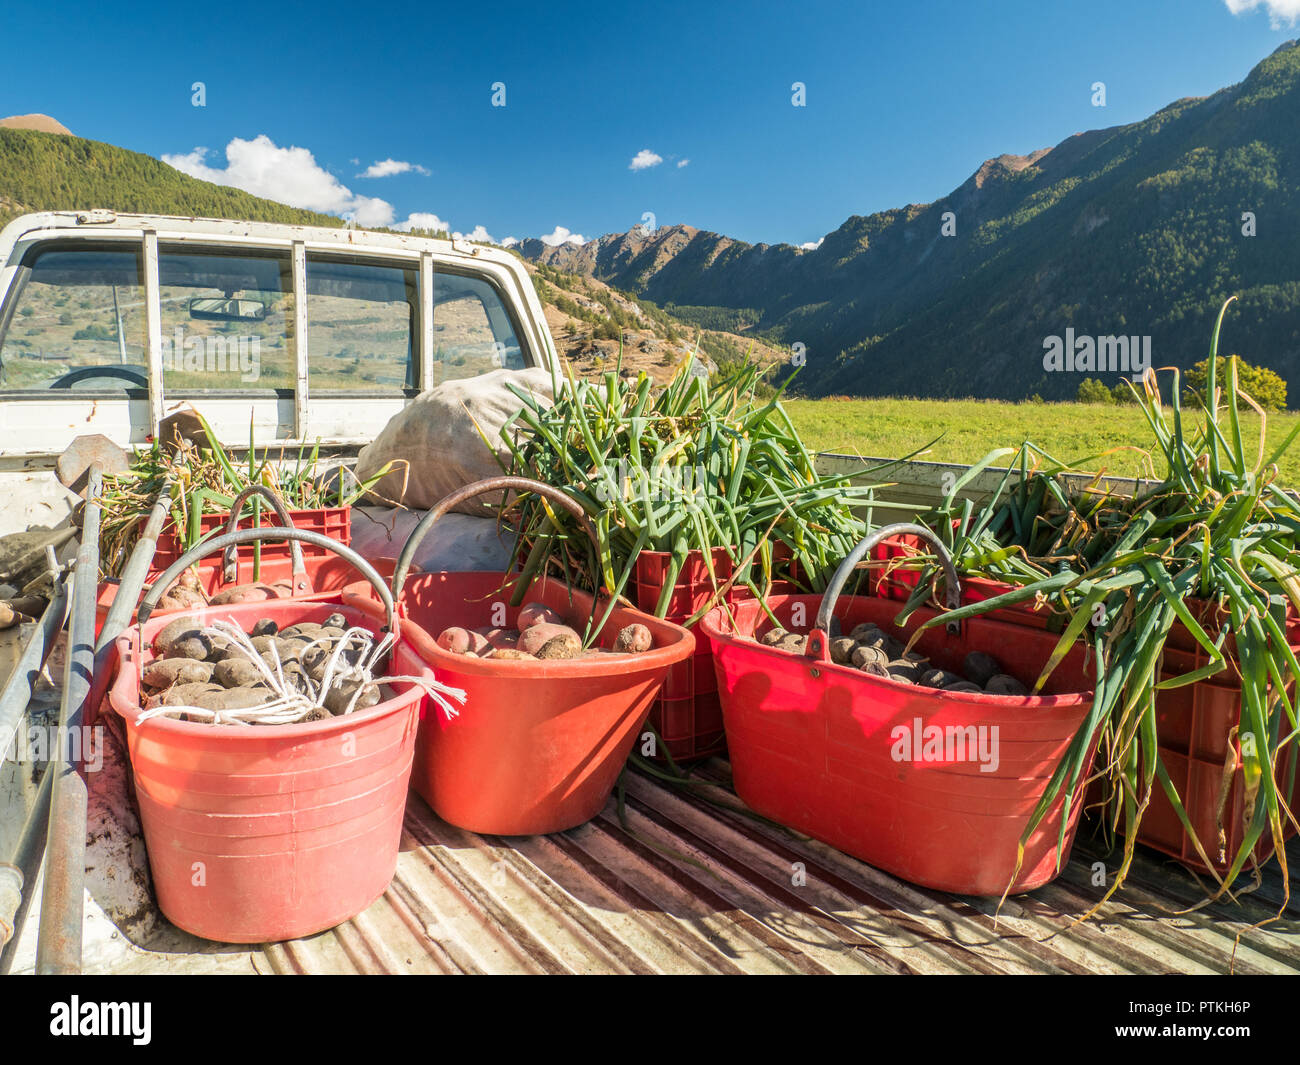 Truck loaded with harvest of organic potatoes & onions in the Village of Lignan, Aosta Valley, NW Italy Stock Photo